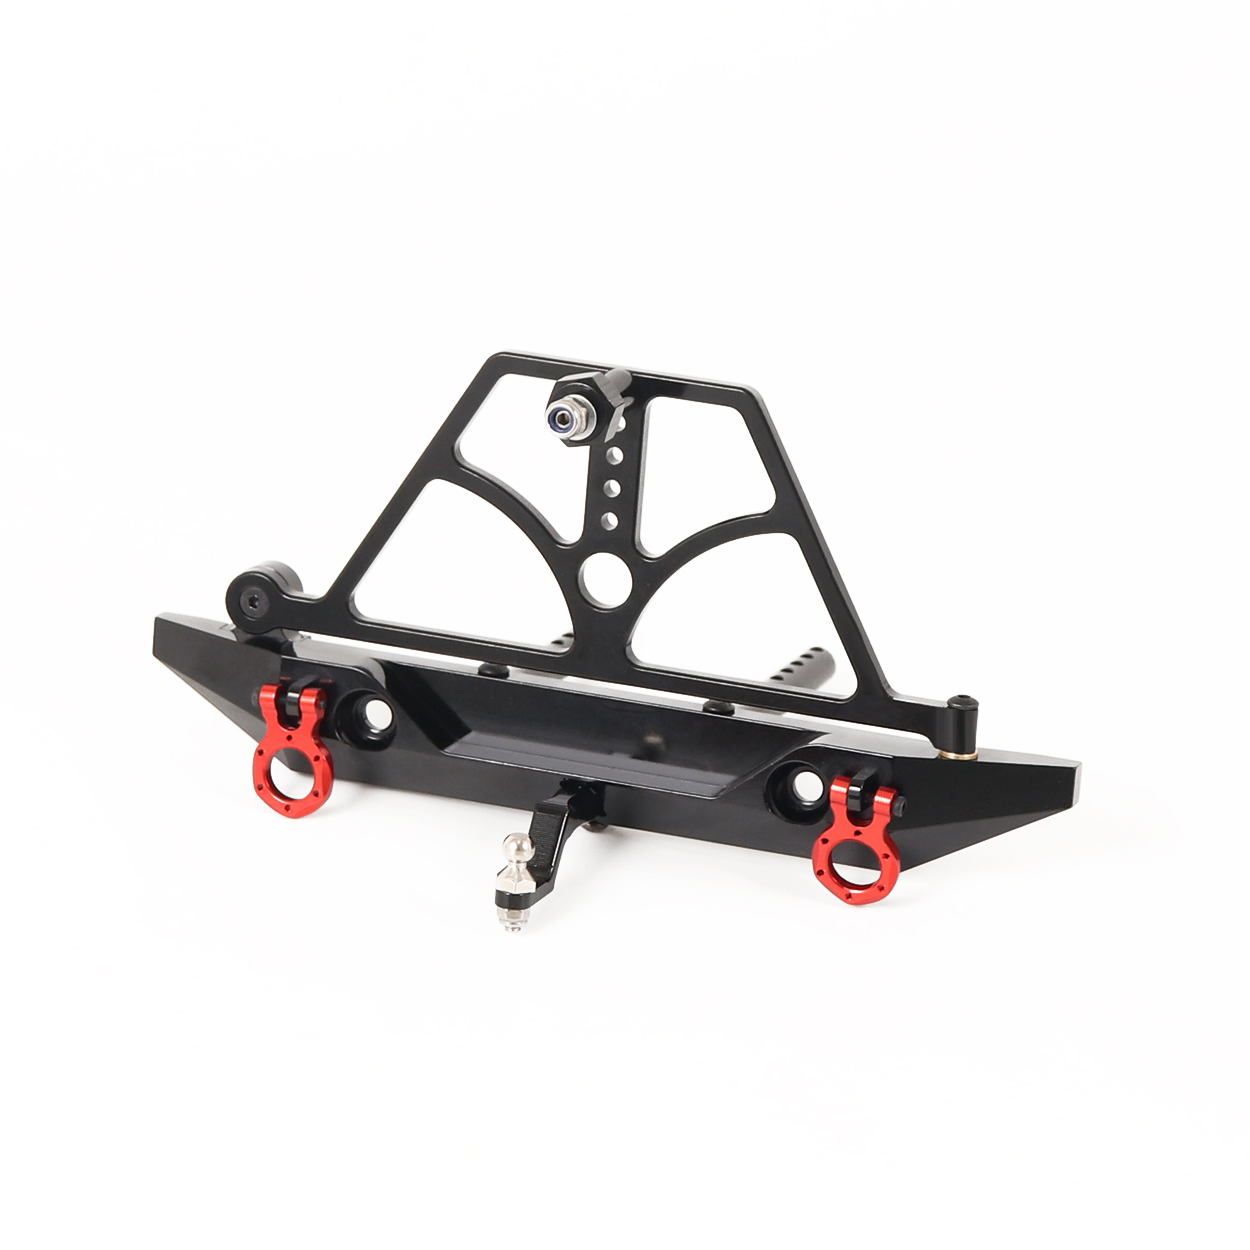 CNC Aluminum Rear Bumper with Swing Spare Tire Rack and Trailer Hitch for 1/10 RC Crawler Axial SCX10 D90 RGT 86100 black